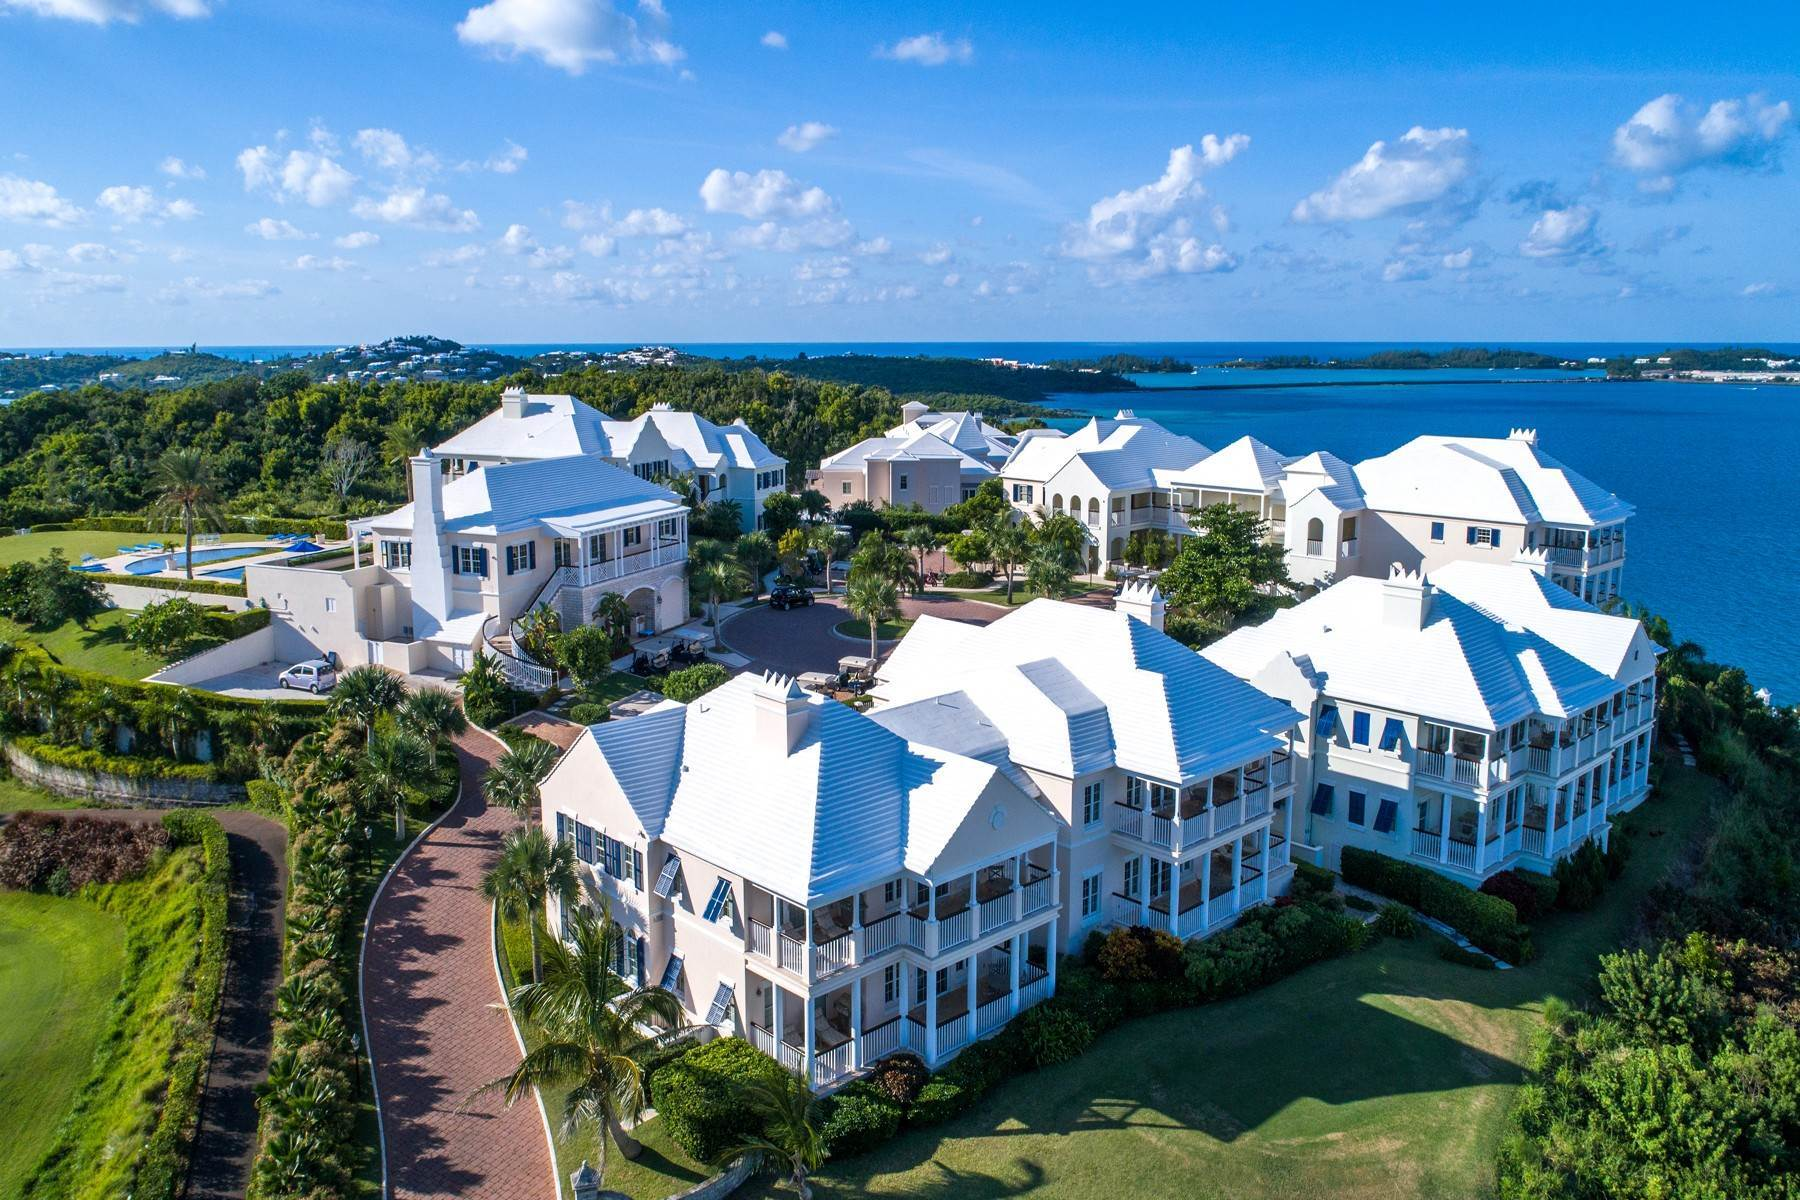 Short Term / Vacation Rentals at Tucker's Point Residents Club St Georges Parish, Bermuda